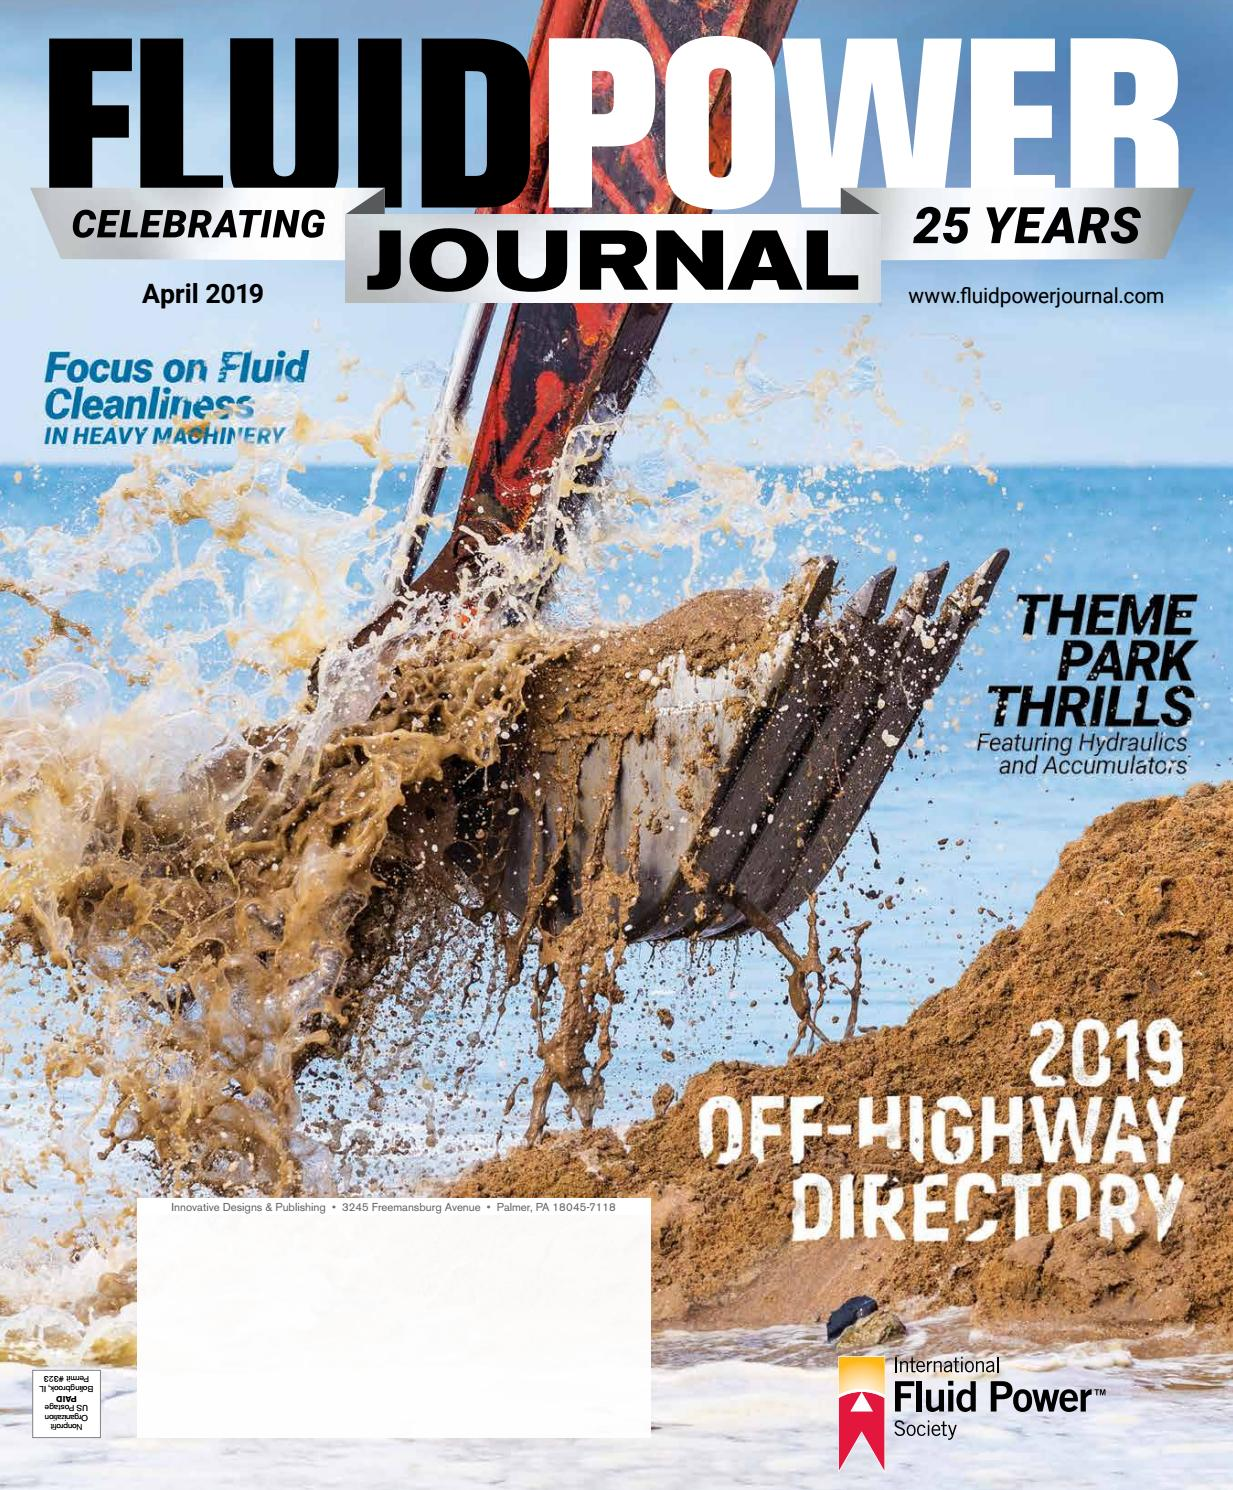 Fluid Power Journal April 2019 Issue by Innovative Designs